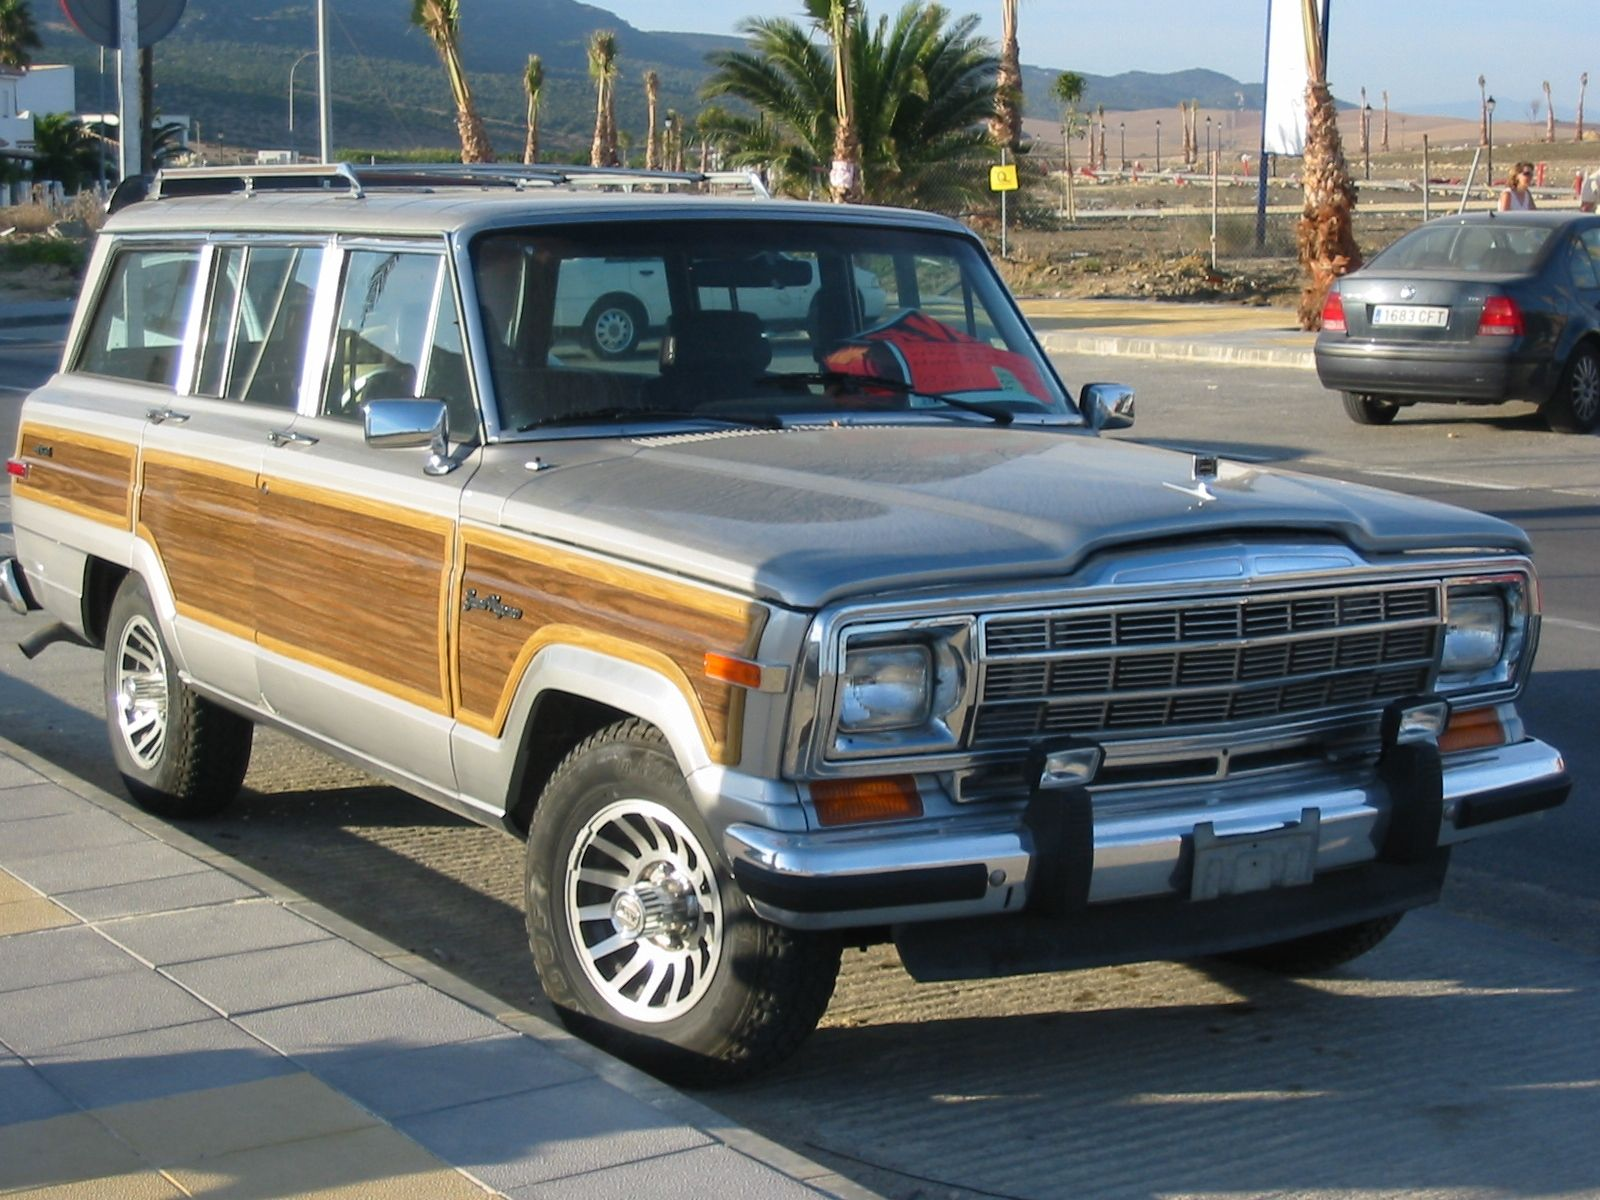 2014 jeep grand wagoneer concept images wallpaper is hd wallpaper for desktop background iphone computer